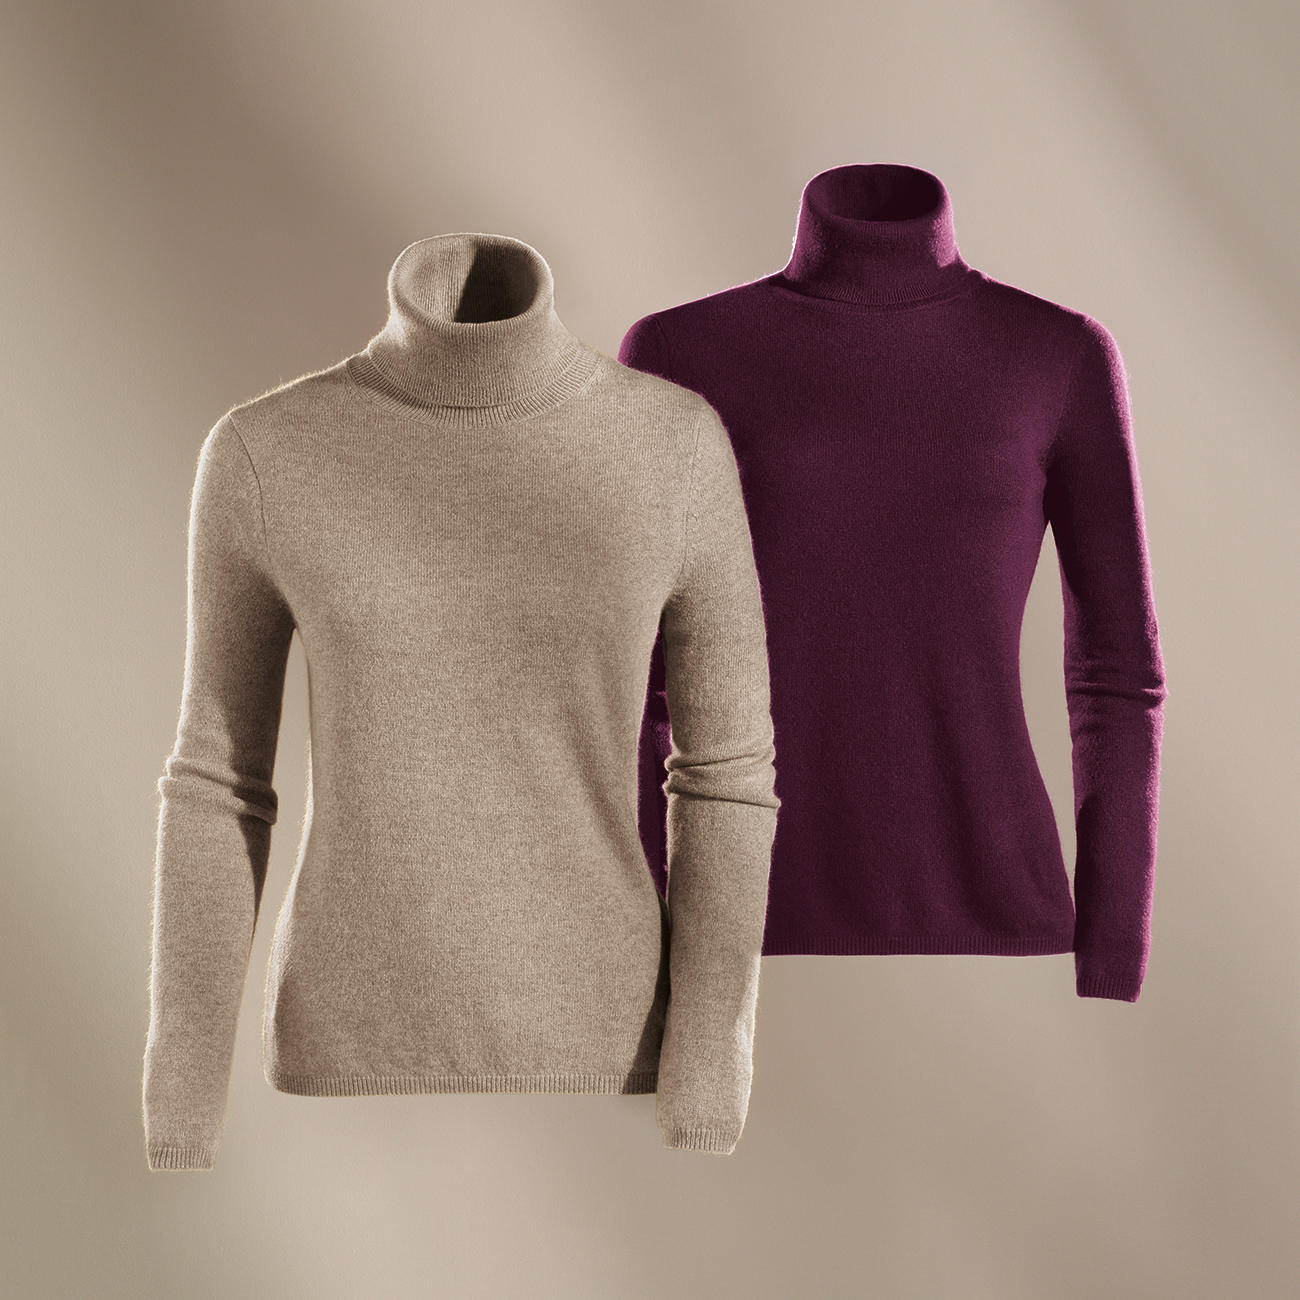 buy ftc cashmere v jumper or polo neck online. Black Bedroom Furniture Sets. Home Design Ideas